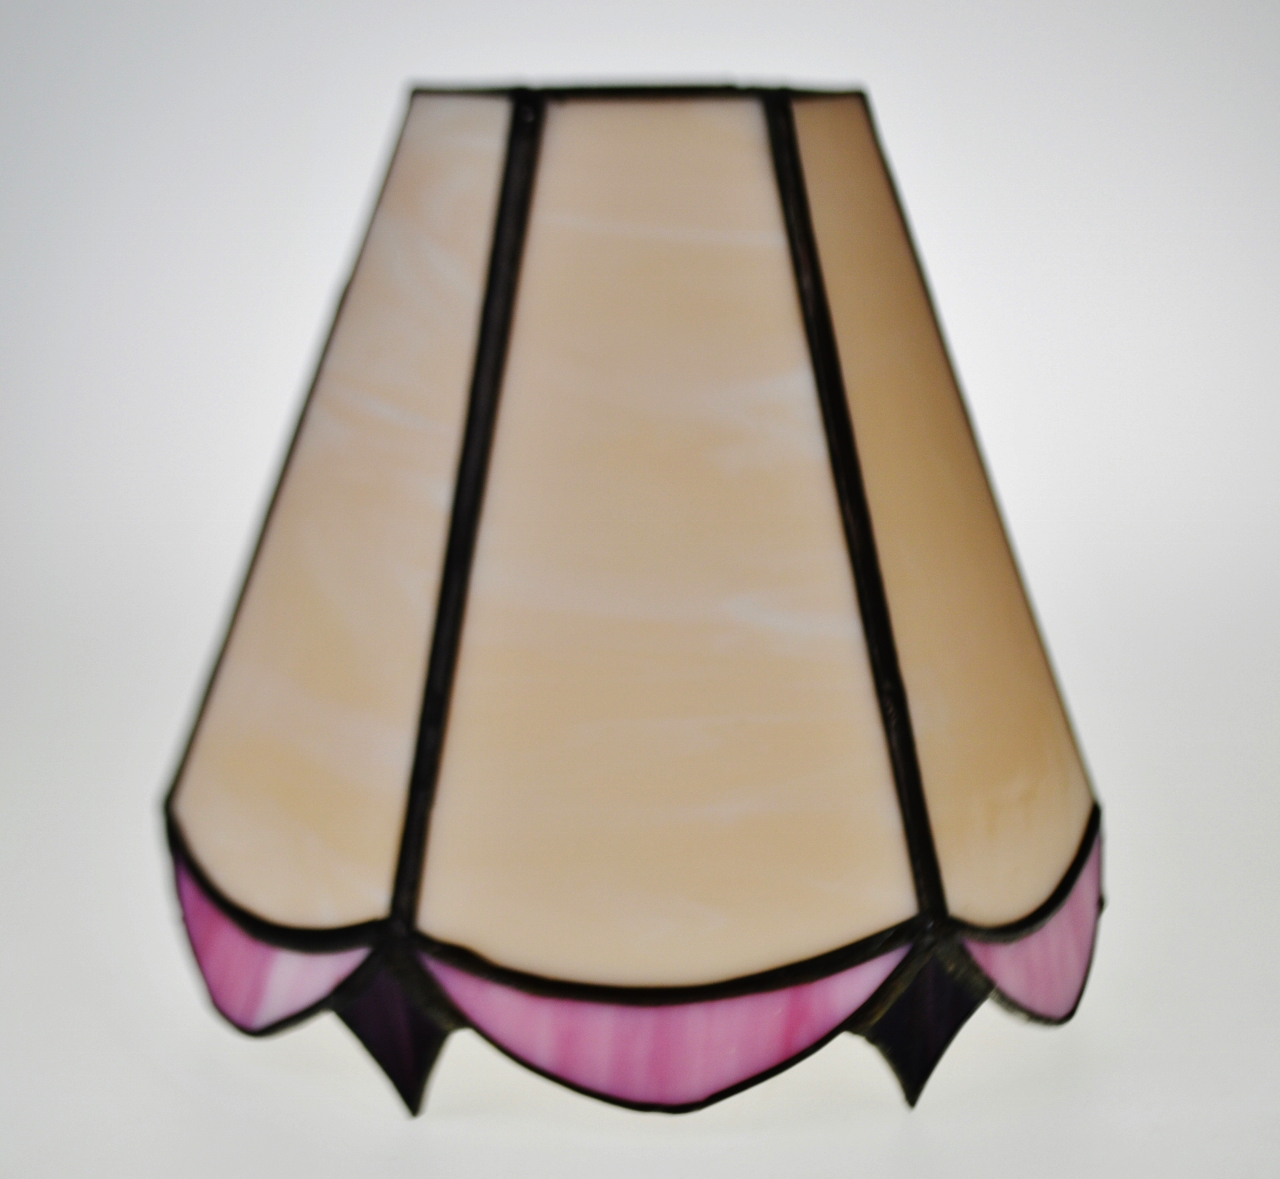 Vintage Tiffany Style Pink And Plum Colored Stained Glass Lamp Shade    Image 3 Of 9